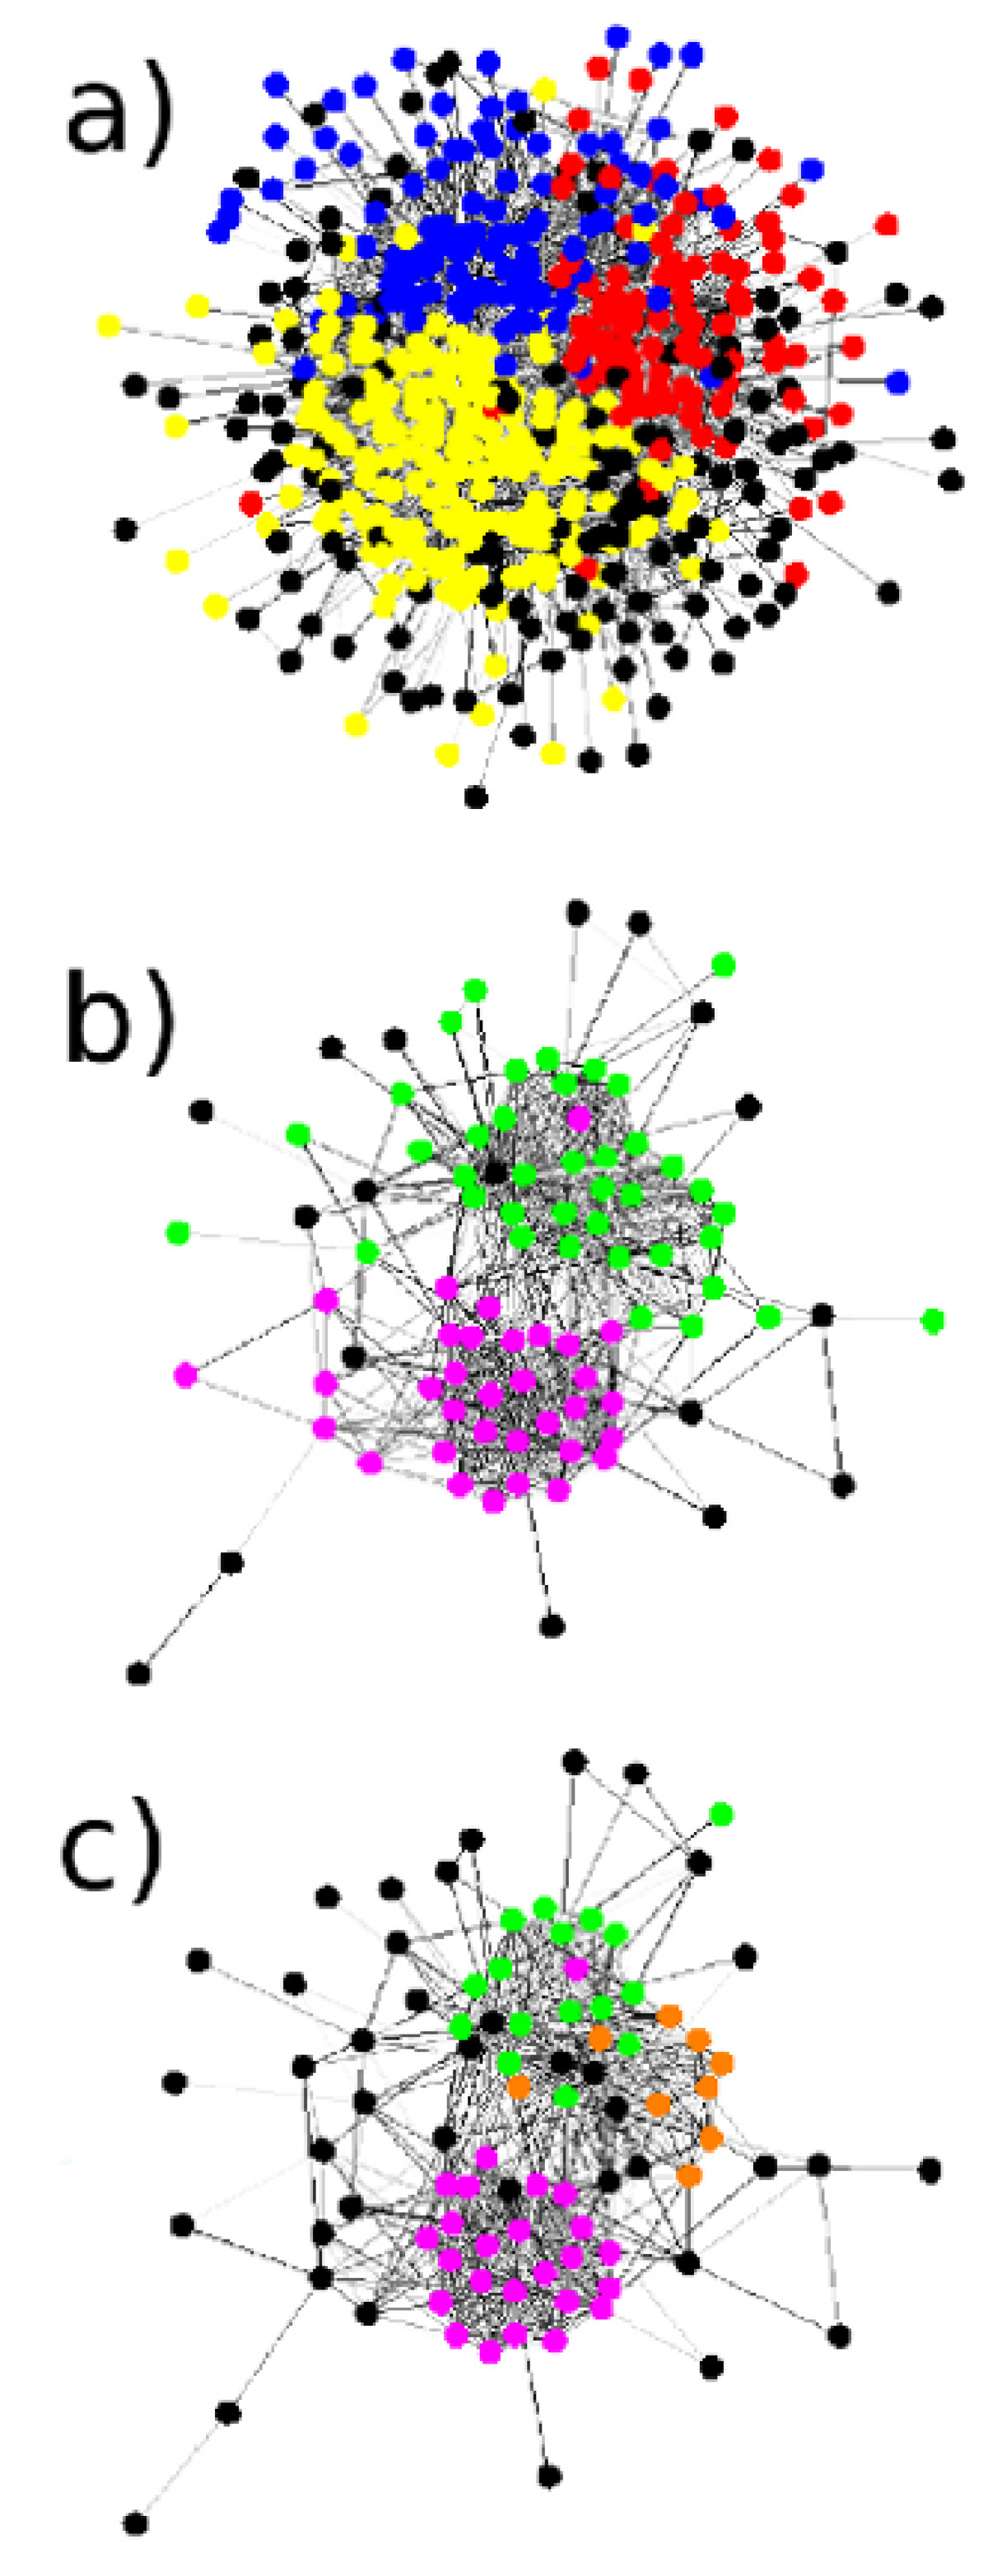 https://static-content.springer.com/image/art%3A10.1186%2F1752-0509-4-100/MediaObjects/12918_2010_Article_489_Fig4_HTML.jpg